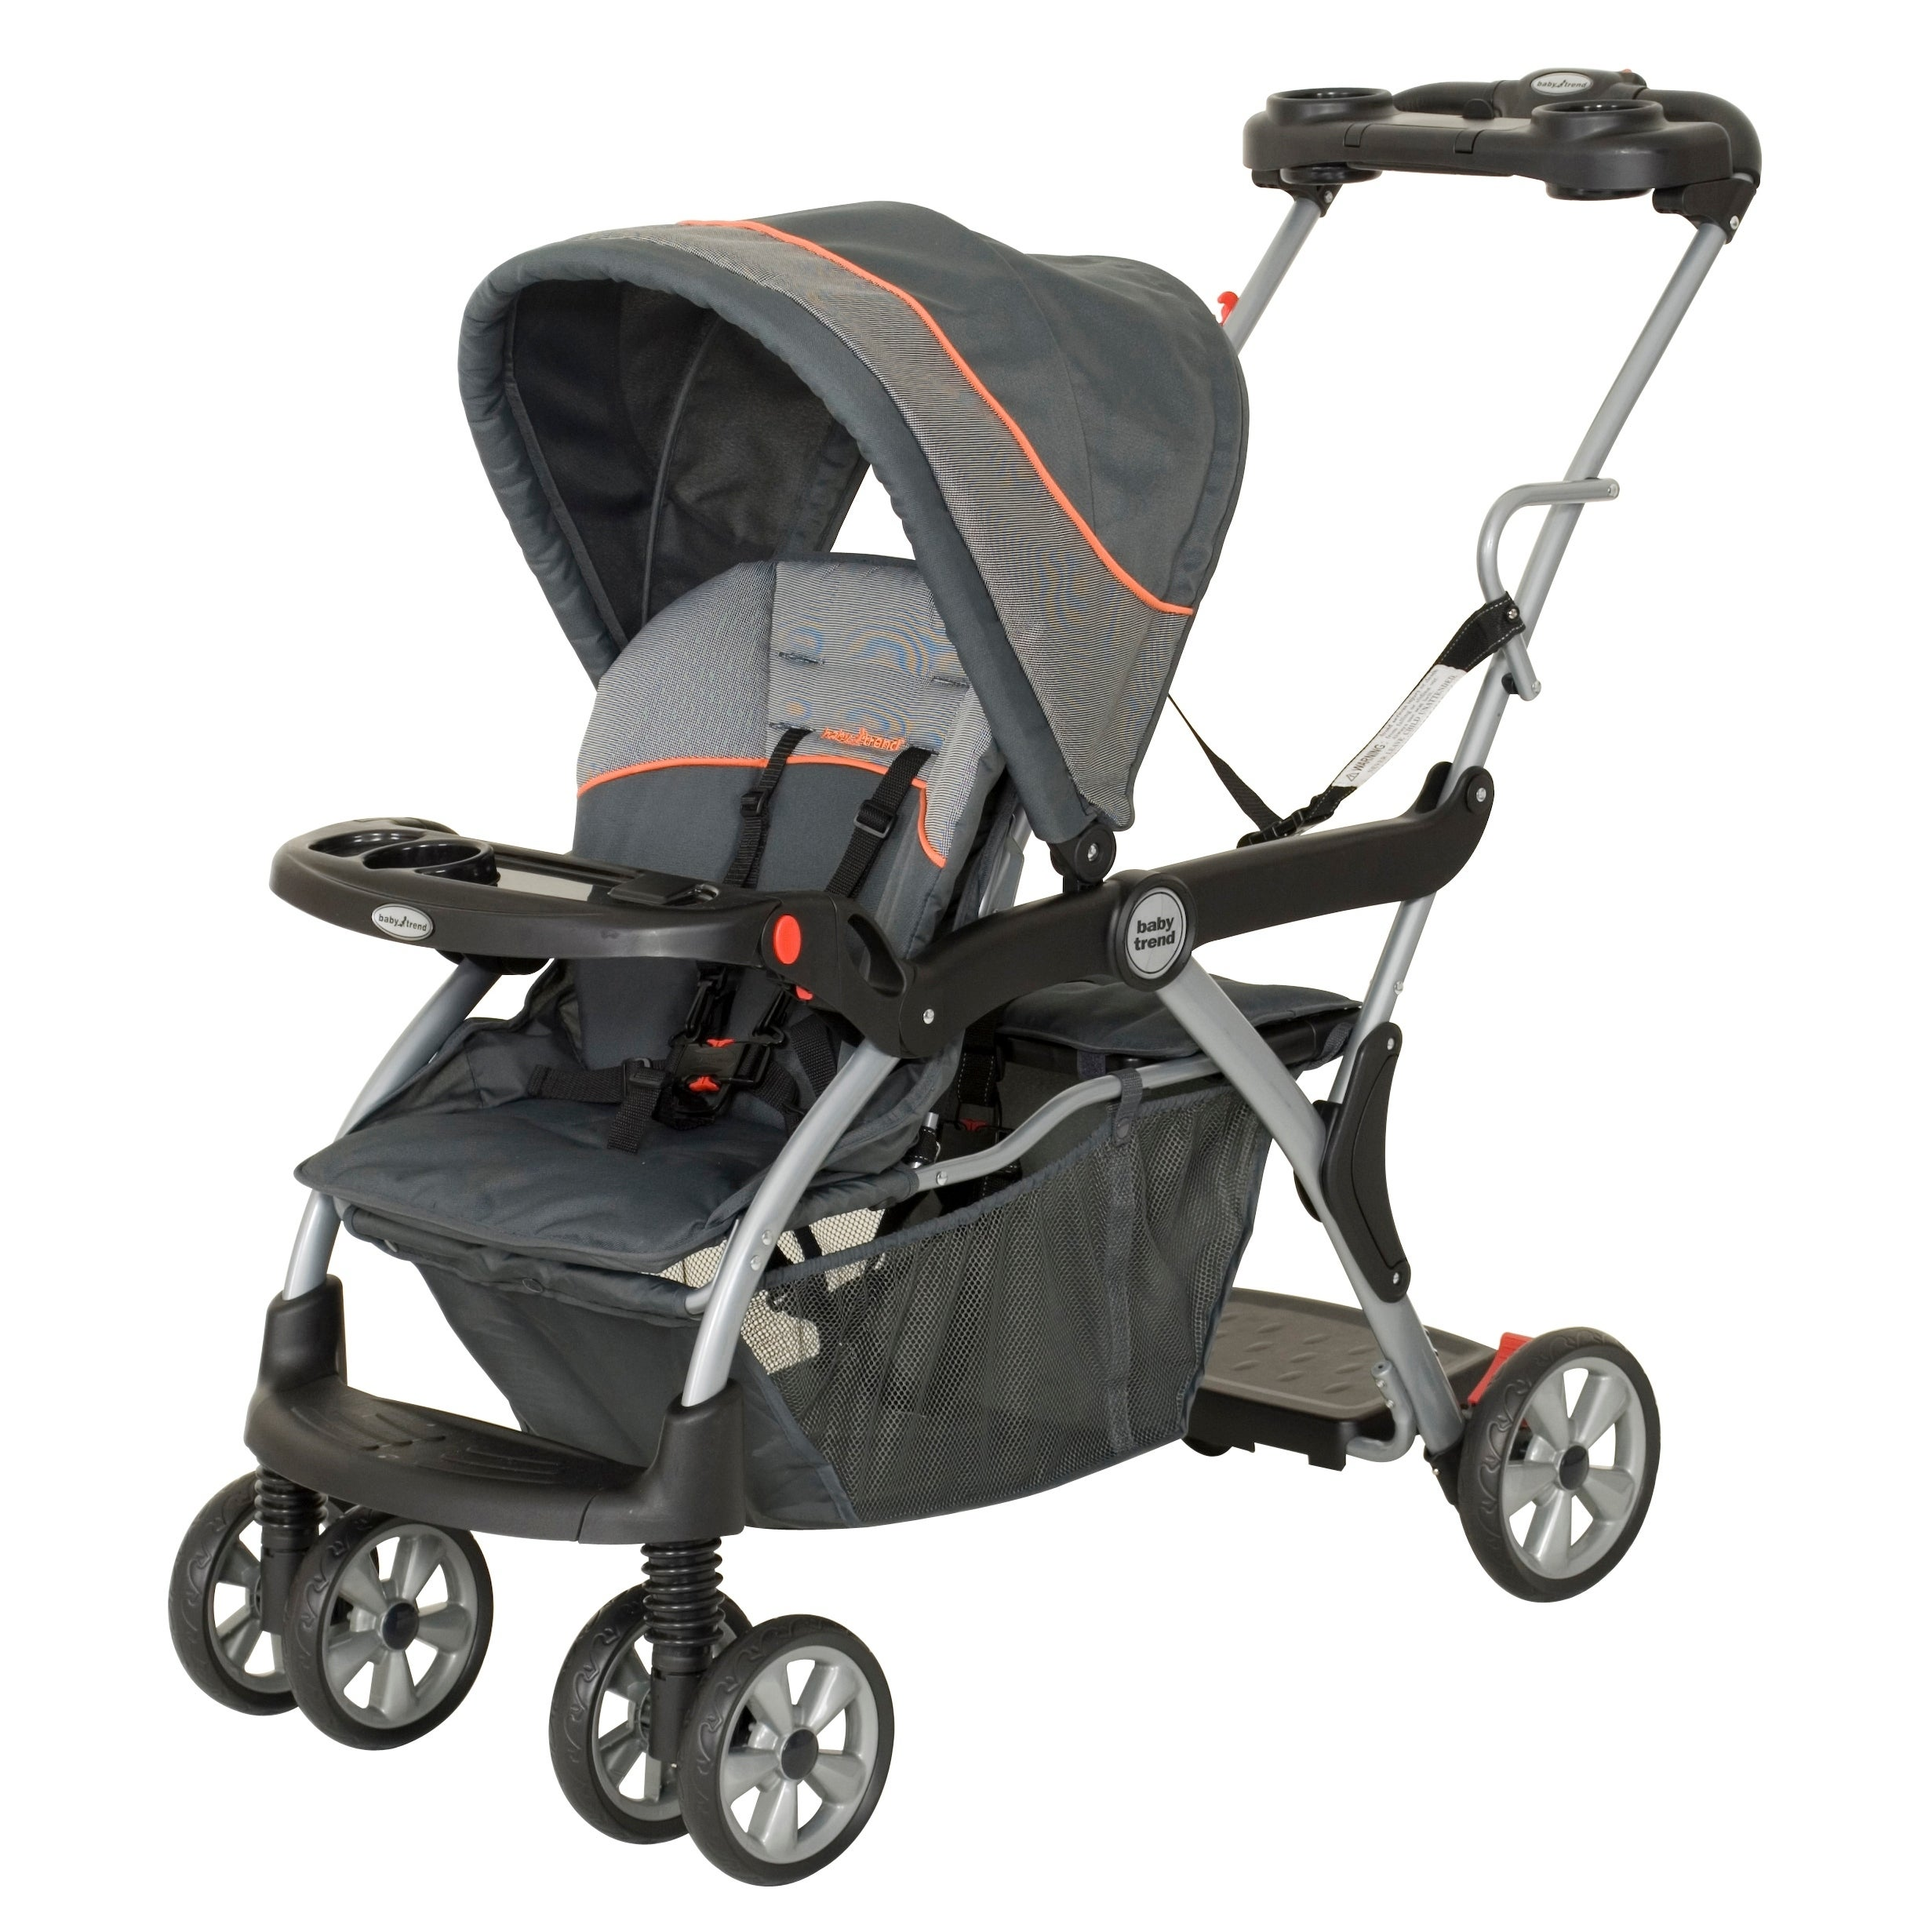 Baby Trend Sit N Stand Double Stroller Vanguard